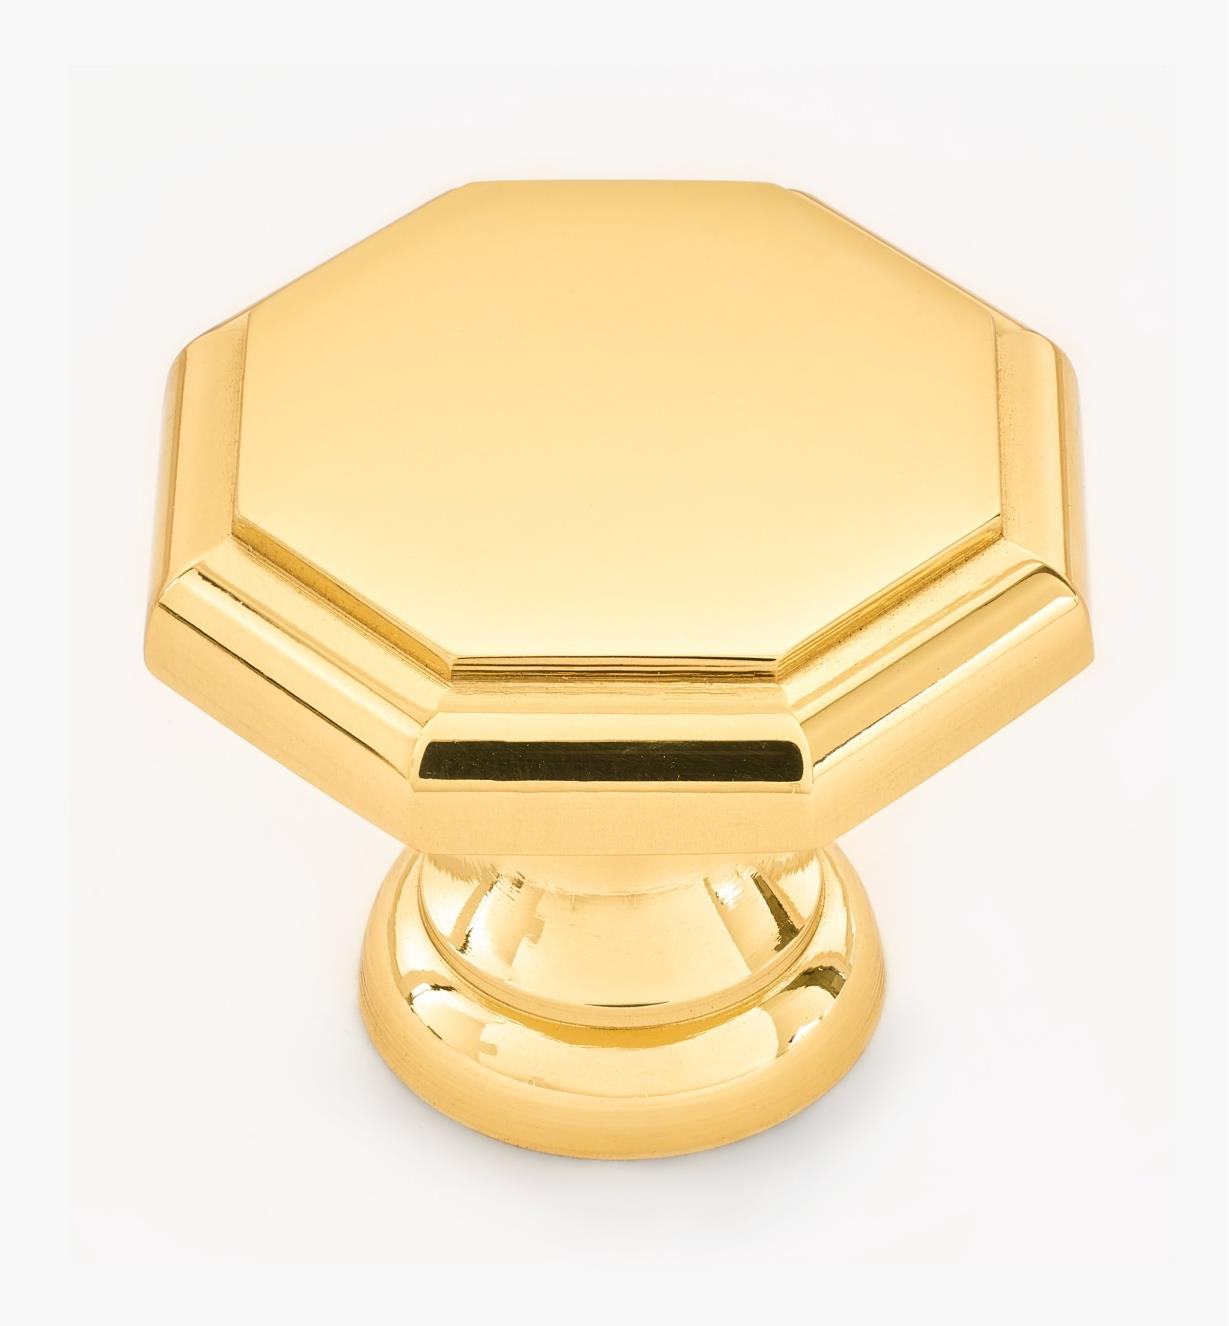 "01W1432 - 1 1/4"" x 1"" Polished Brass Octagonal Knob"